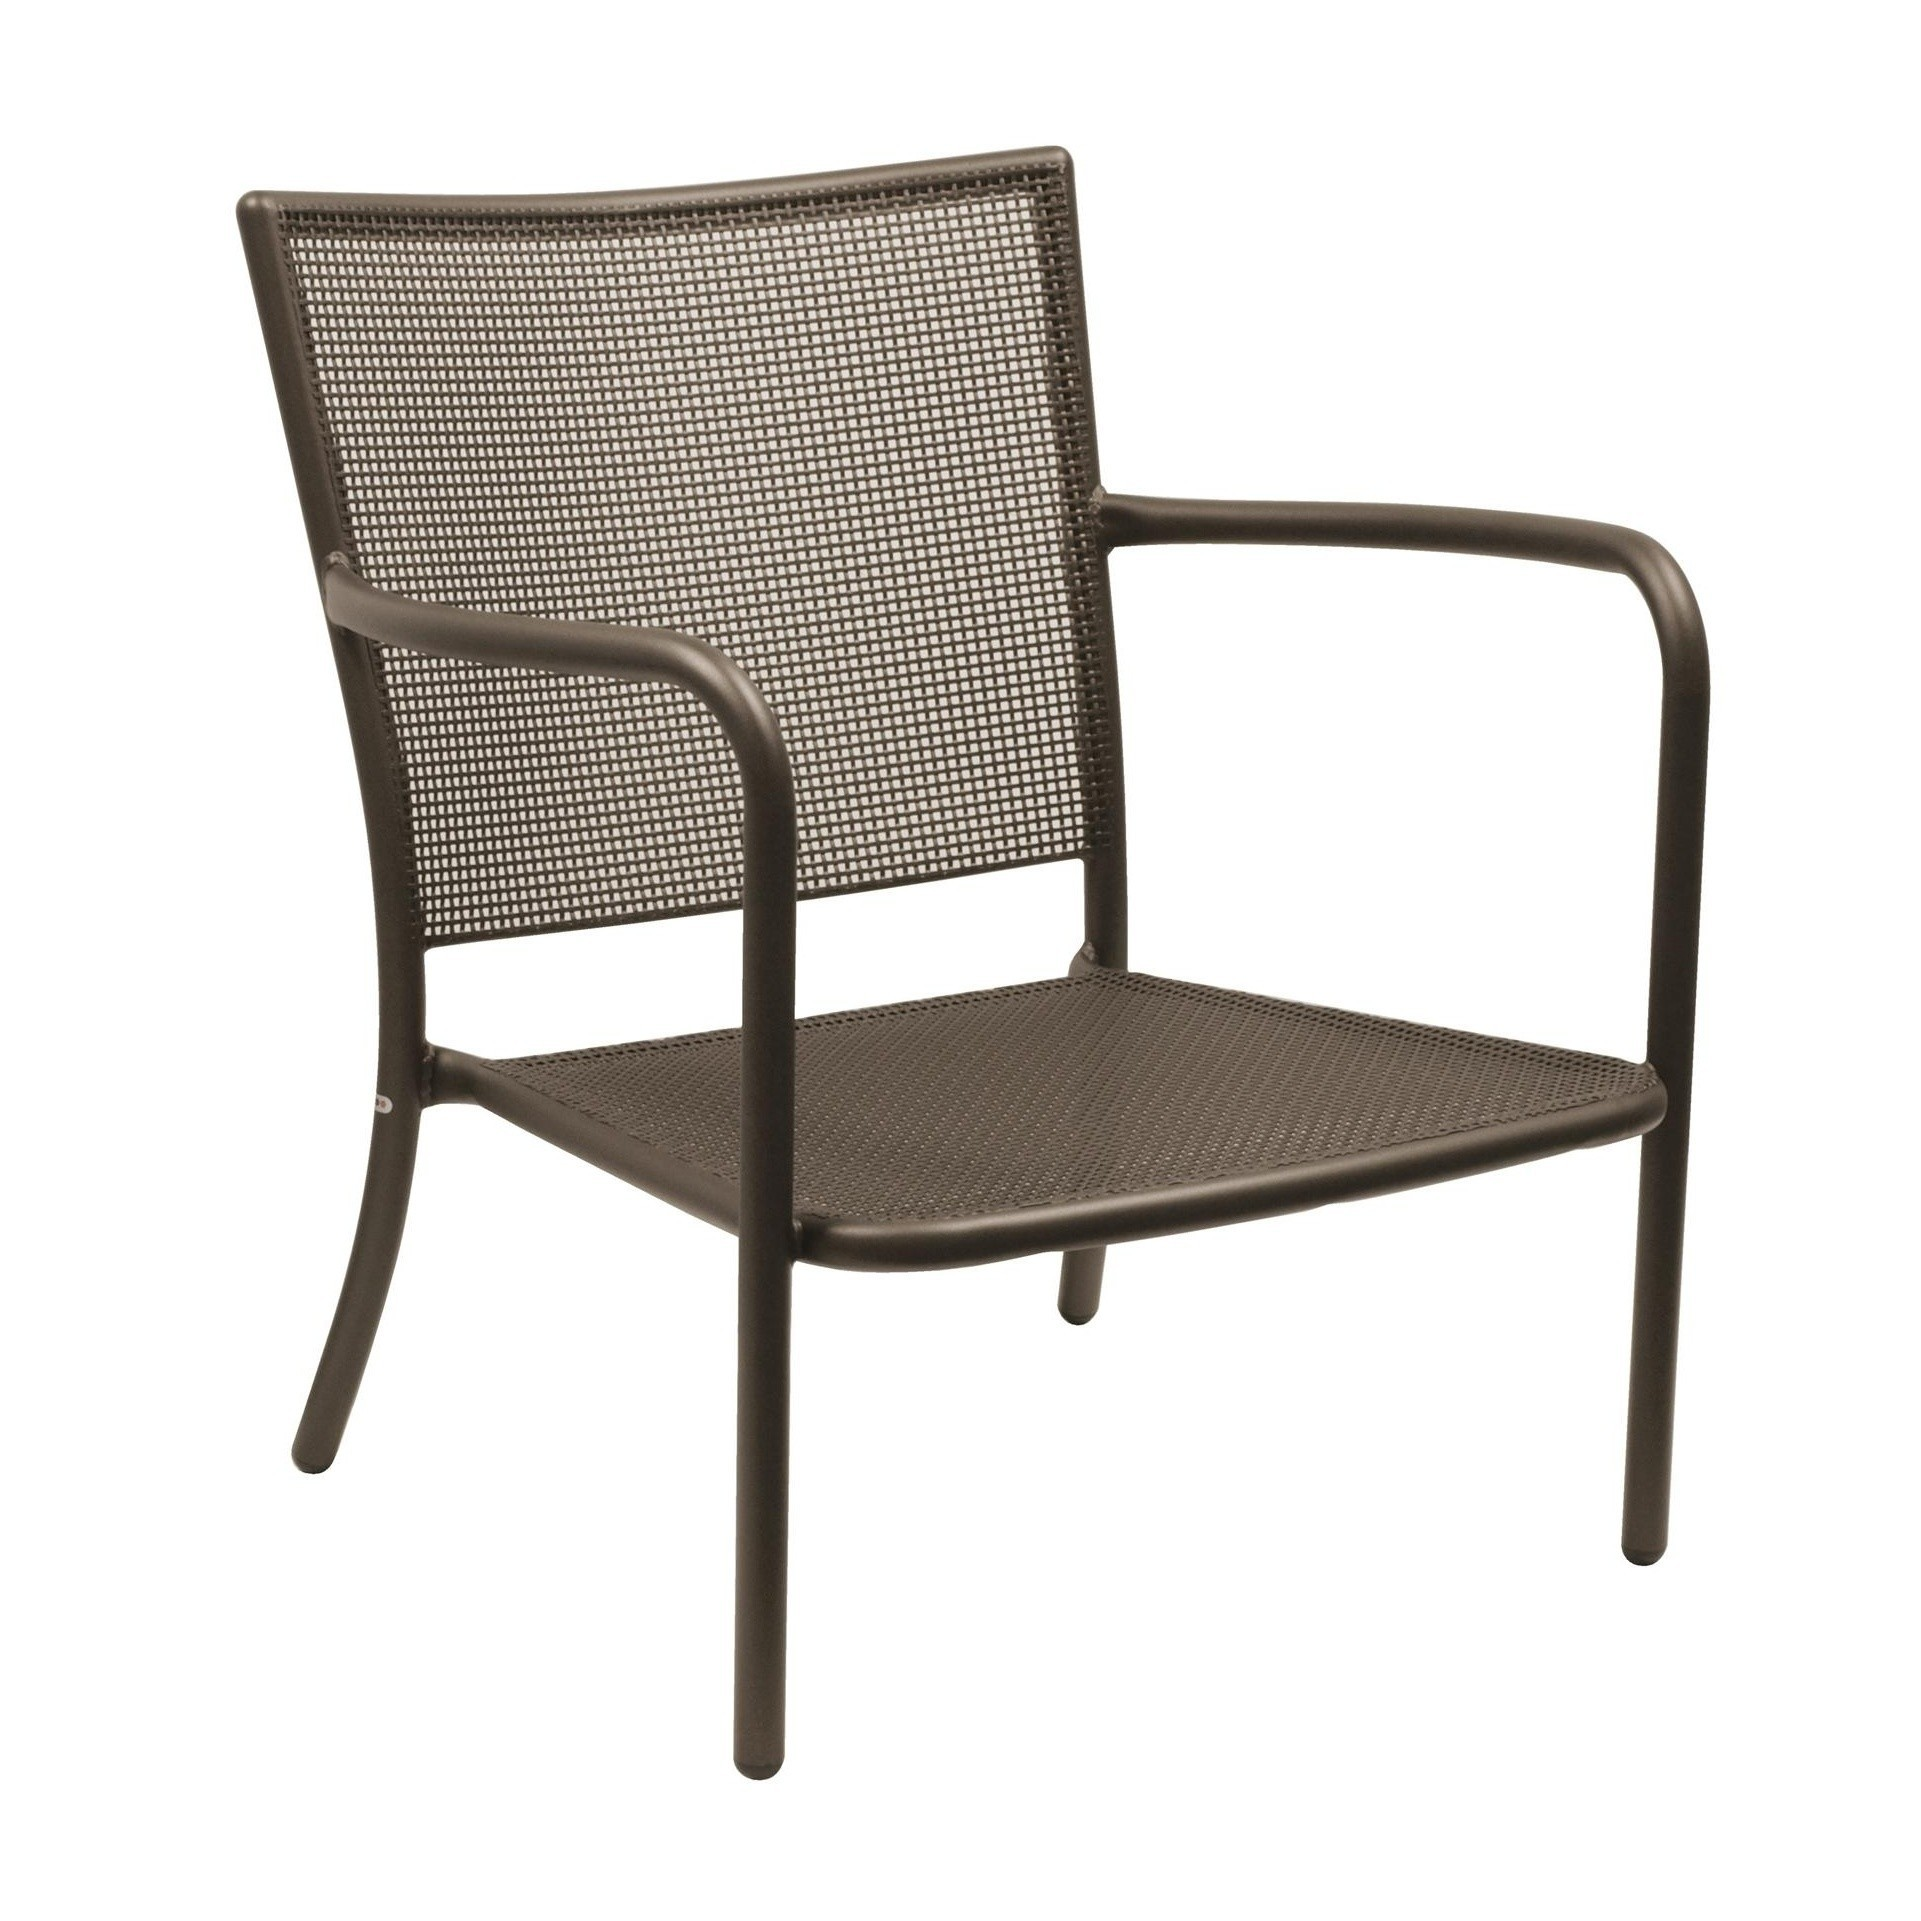 Garten Lounge Sessel Athena Garden Lounge Chair